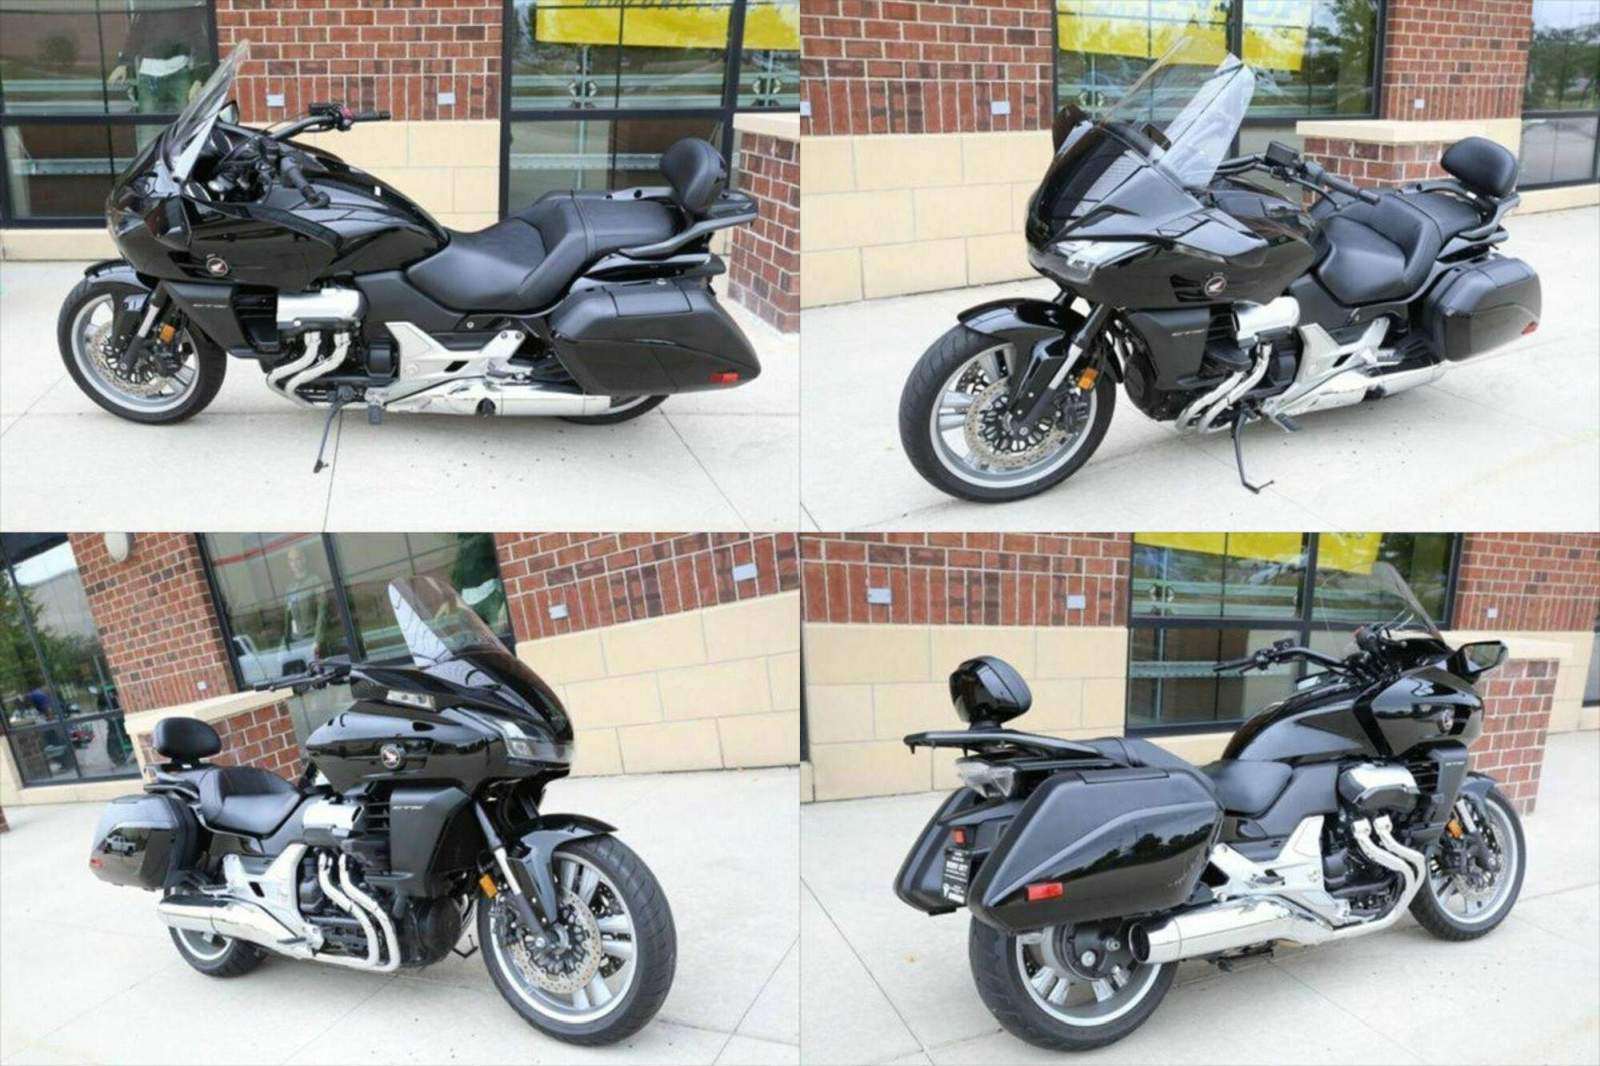 2014 Honda CTX1300 Black used for sale near me